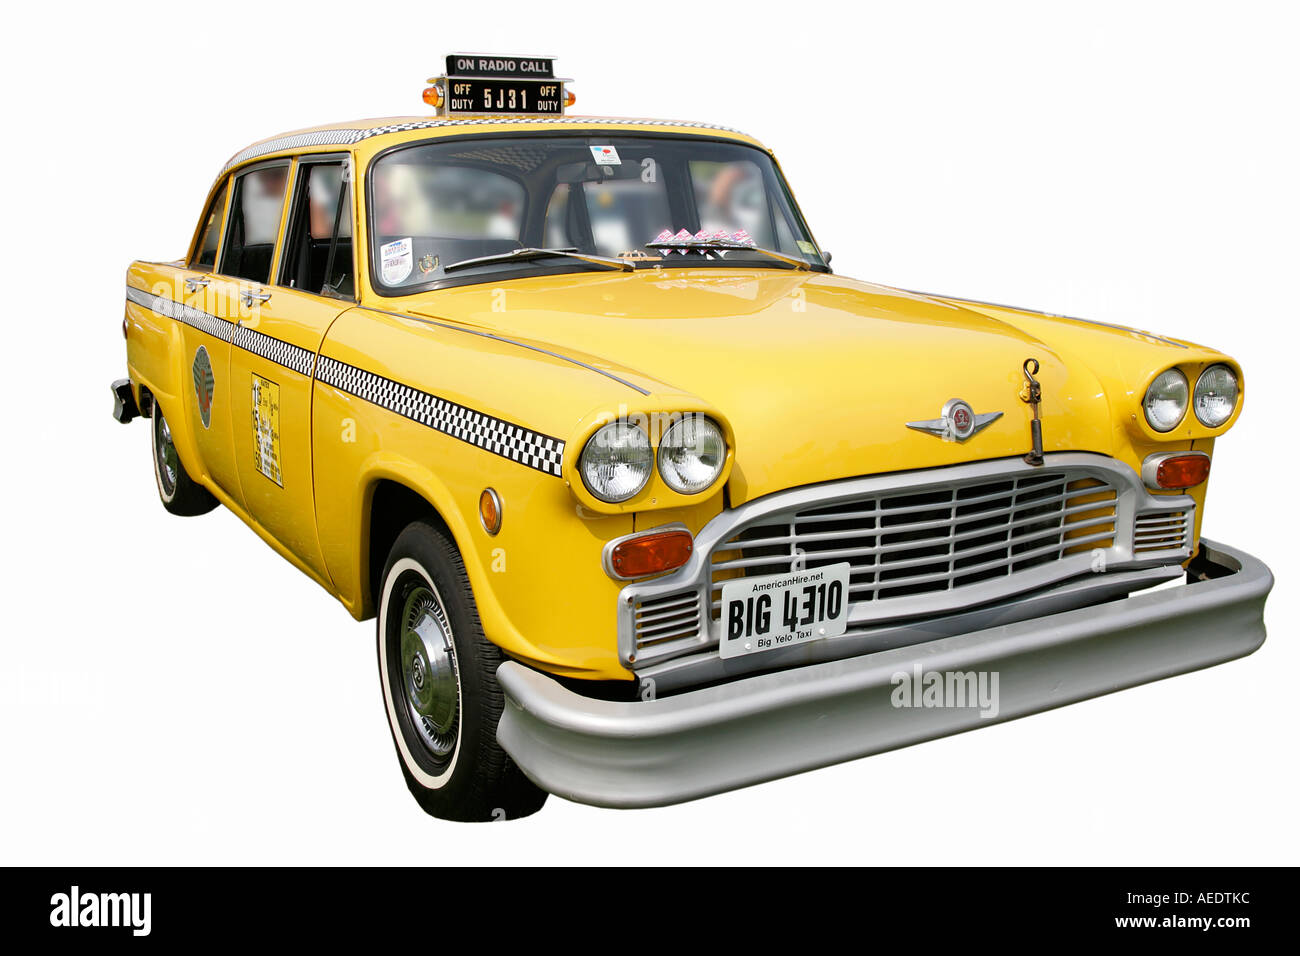 American old car classic history vehicle vintage antipodes symbol ...